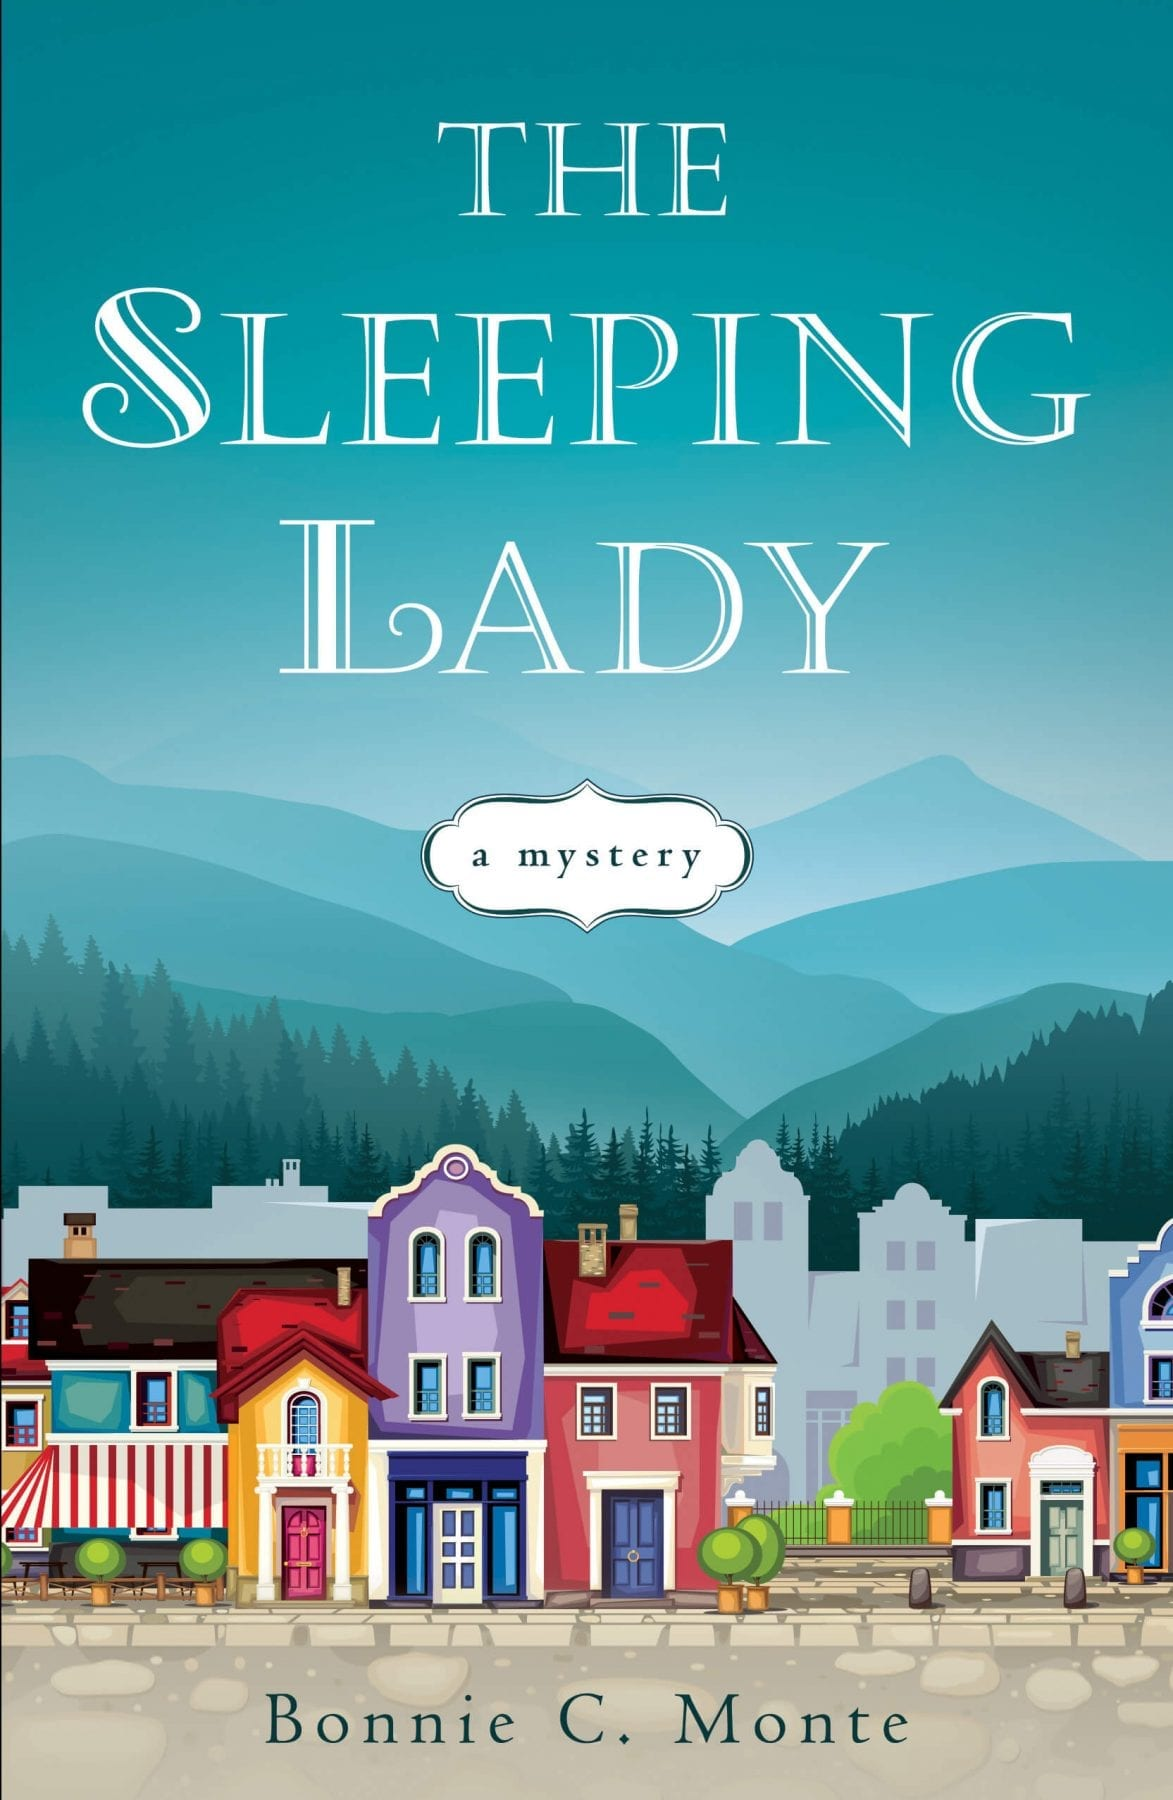 The Sleeping Lady by Bonnie C. Monte